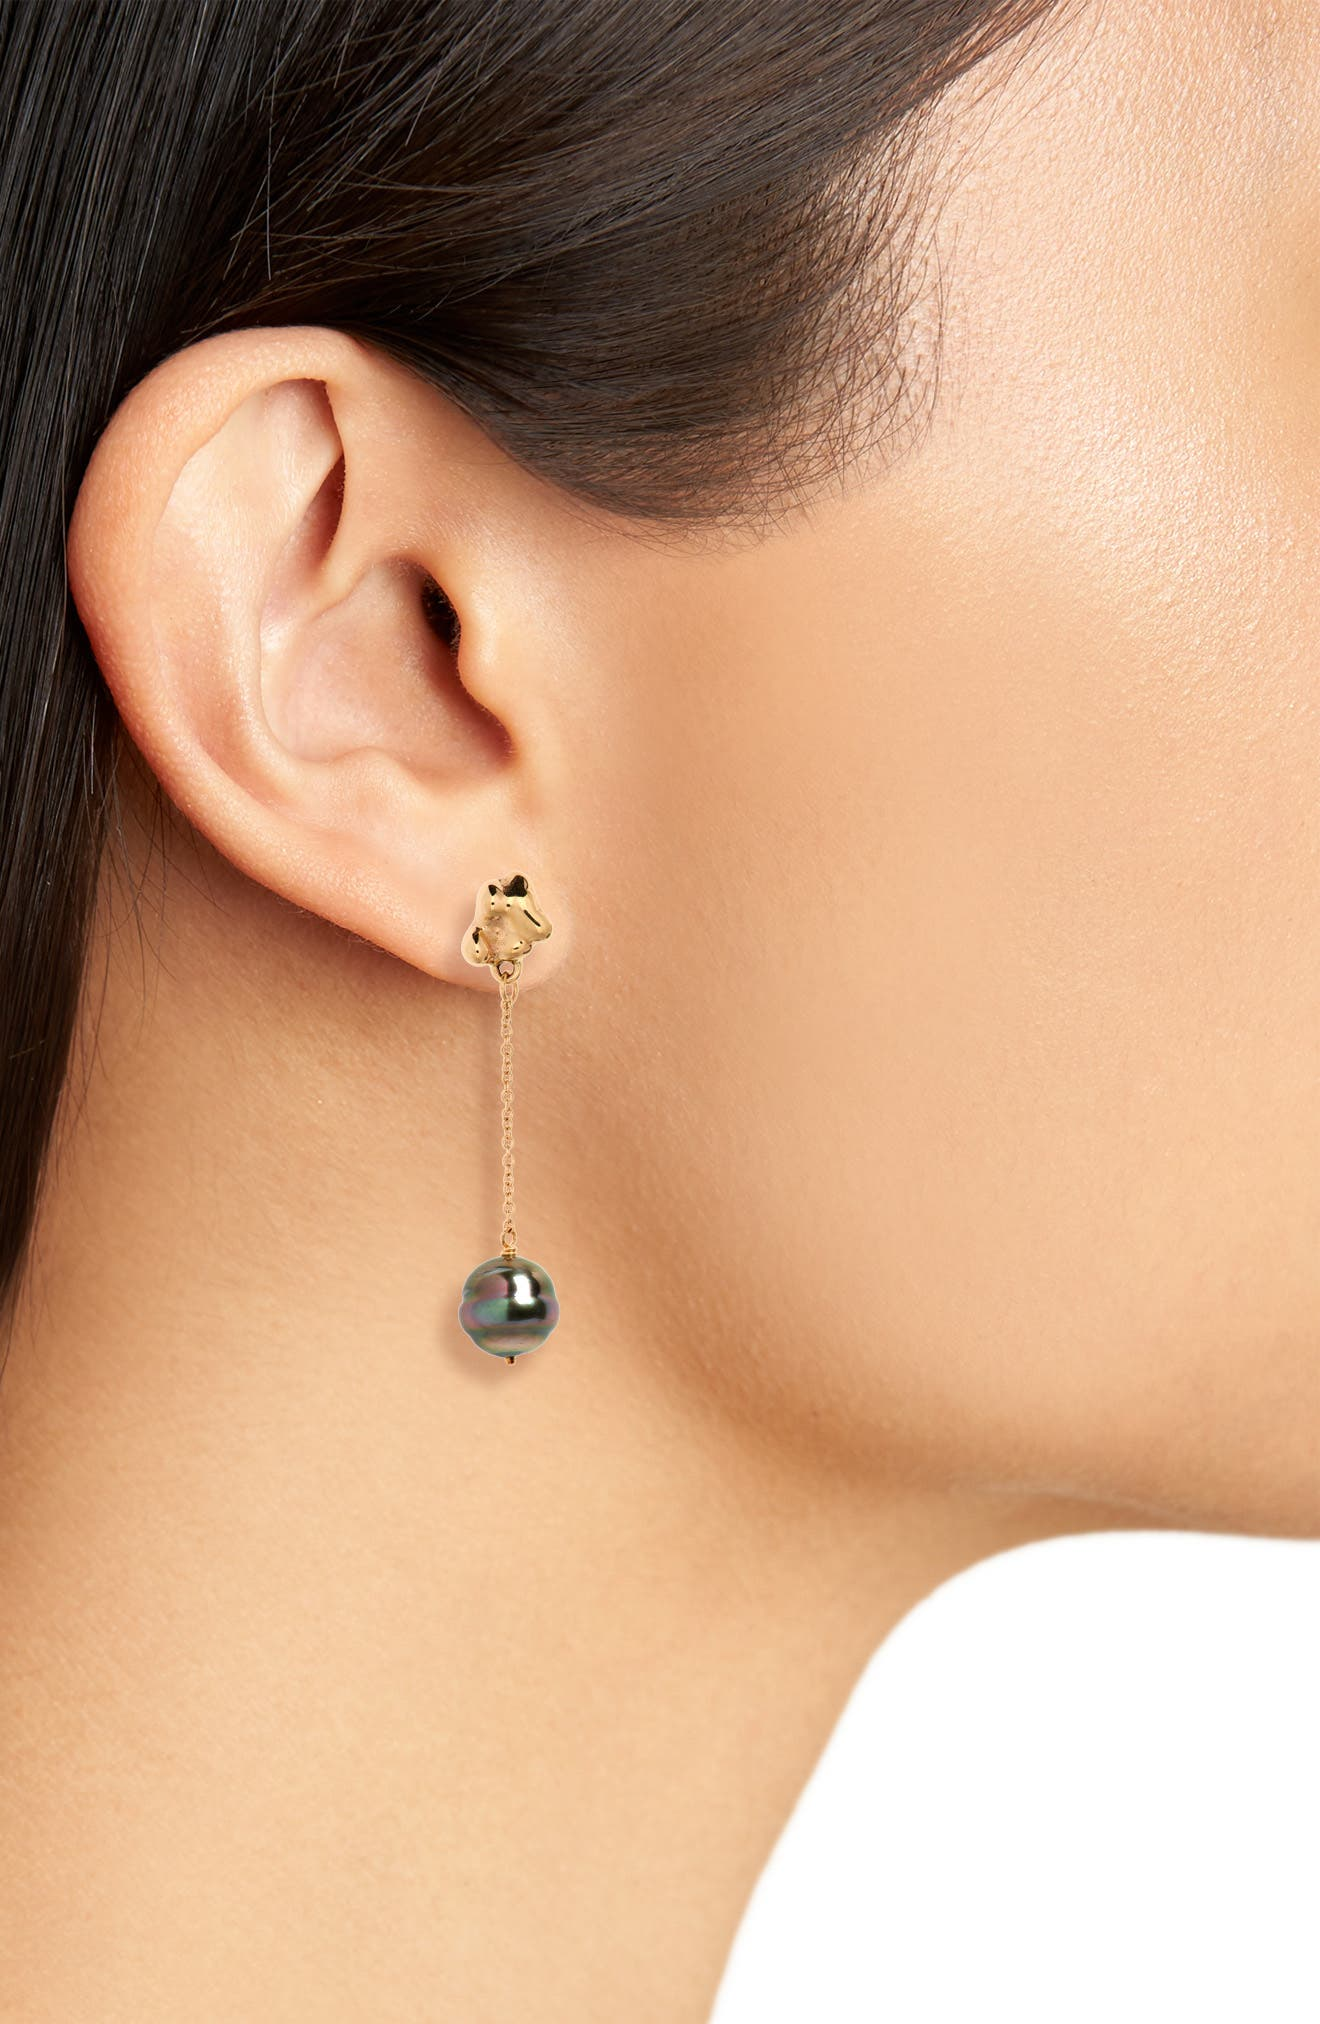 Black Pearl Drop Earrings,                             Alternate thumbnail 2, color,                             GOLD/ BLACK PEARL